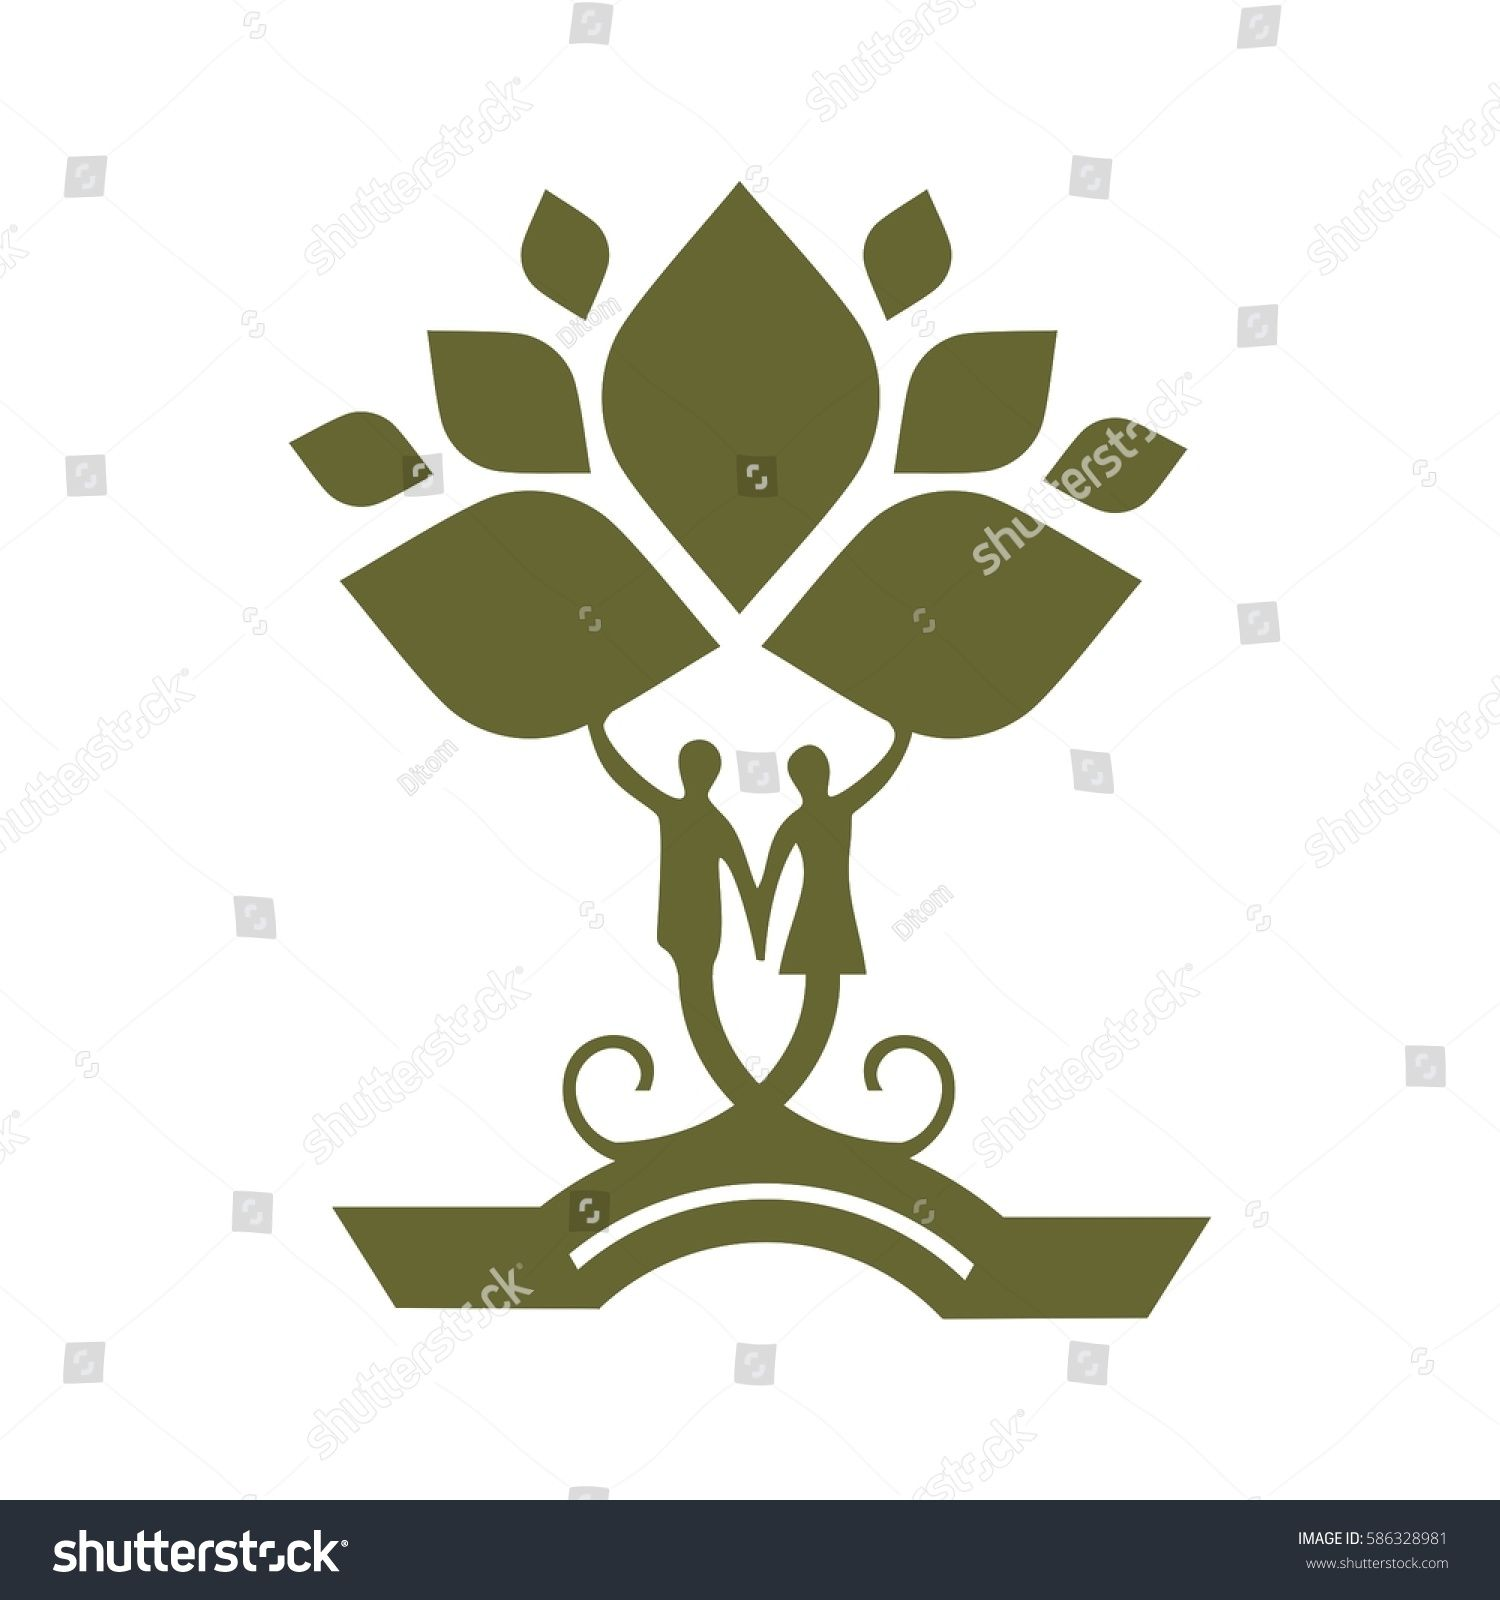 Collection Of Yoga People Logo Design Templates: Image Result For SYMBOL FOR UNITY